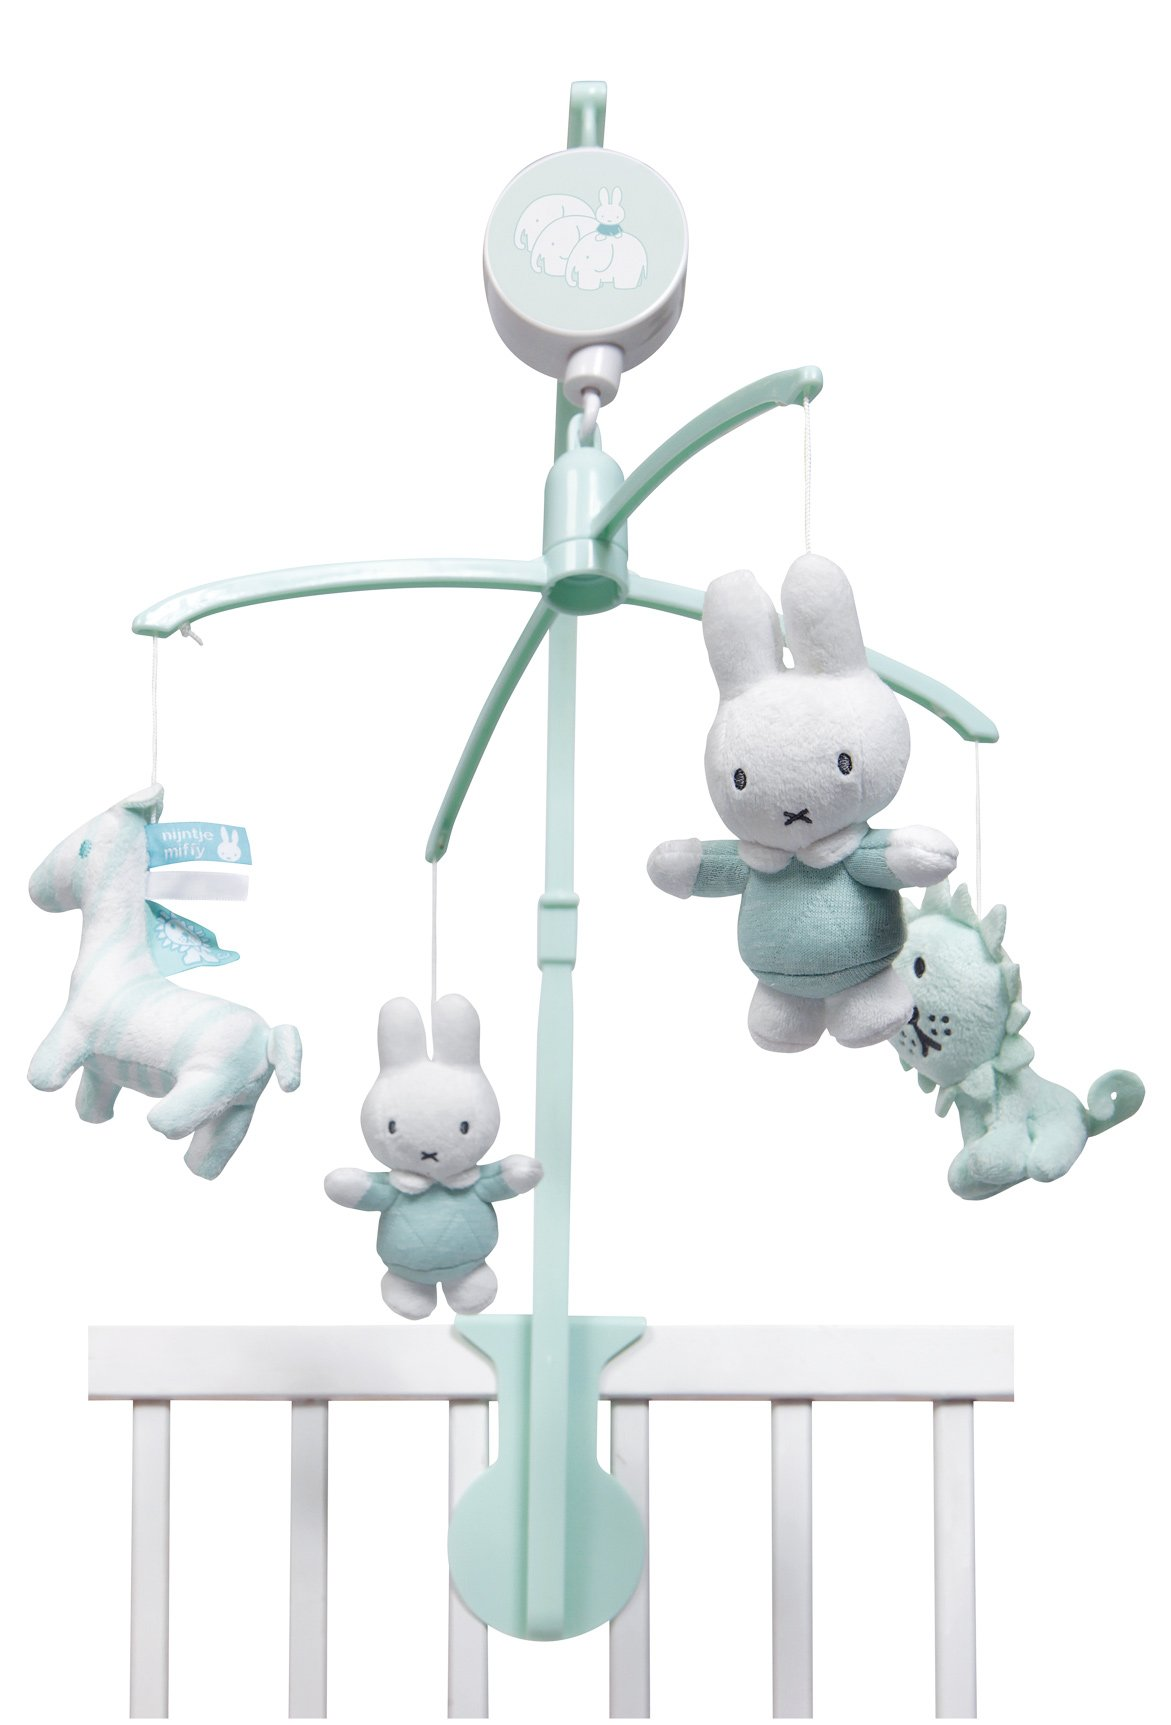 Hase Miffy Mobile Musikmobile Mint mit Halterung - Twinkle Twinkle